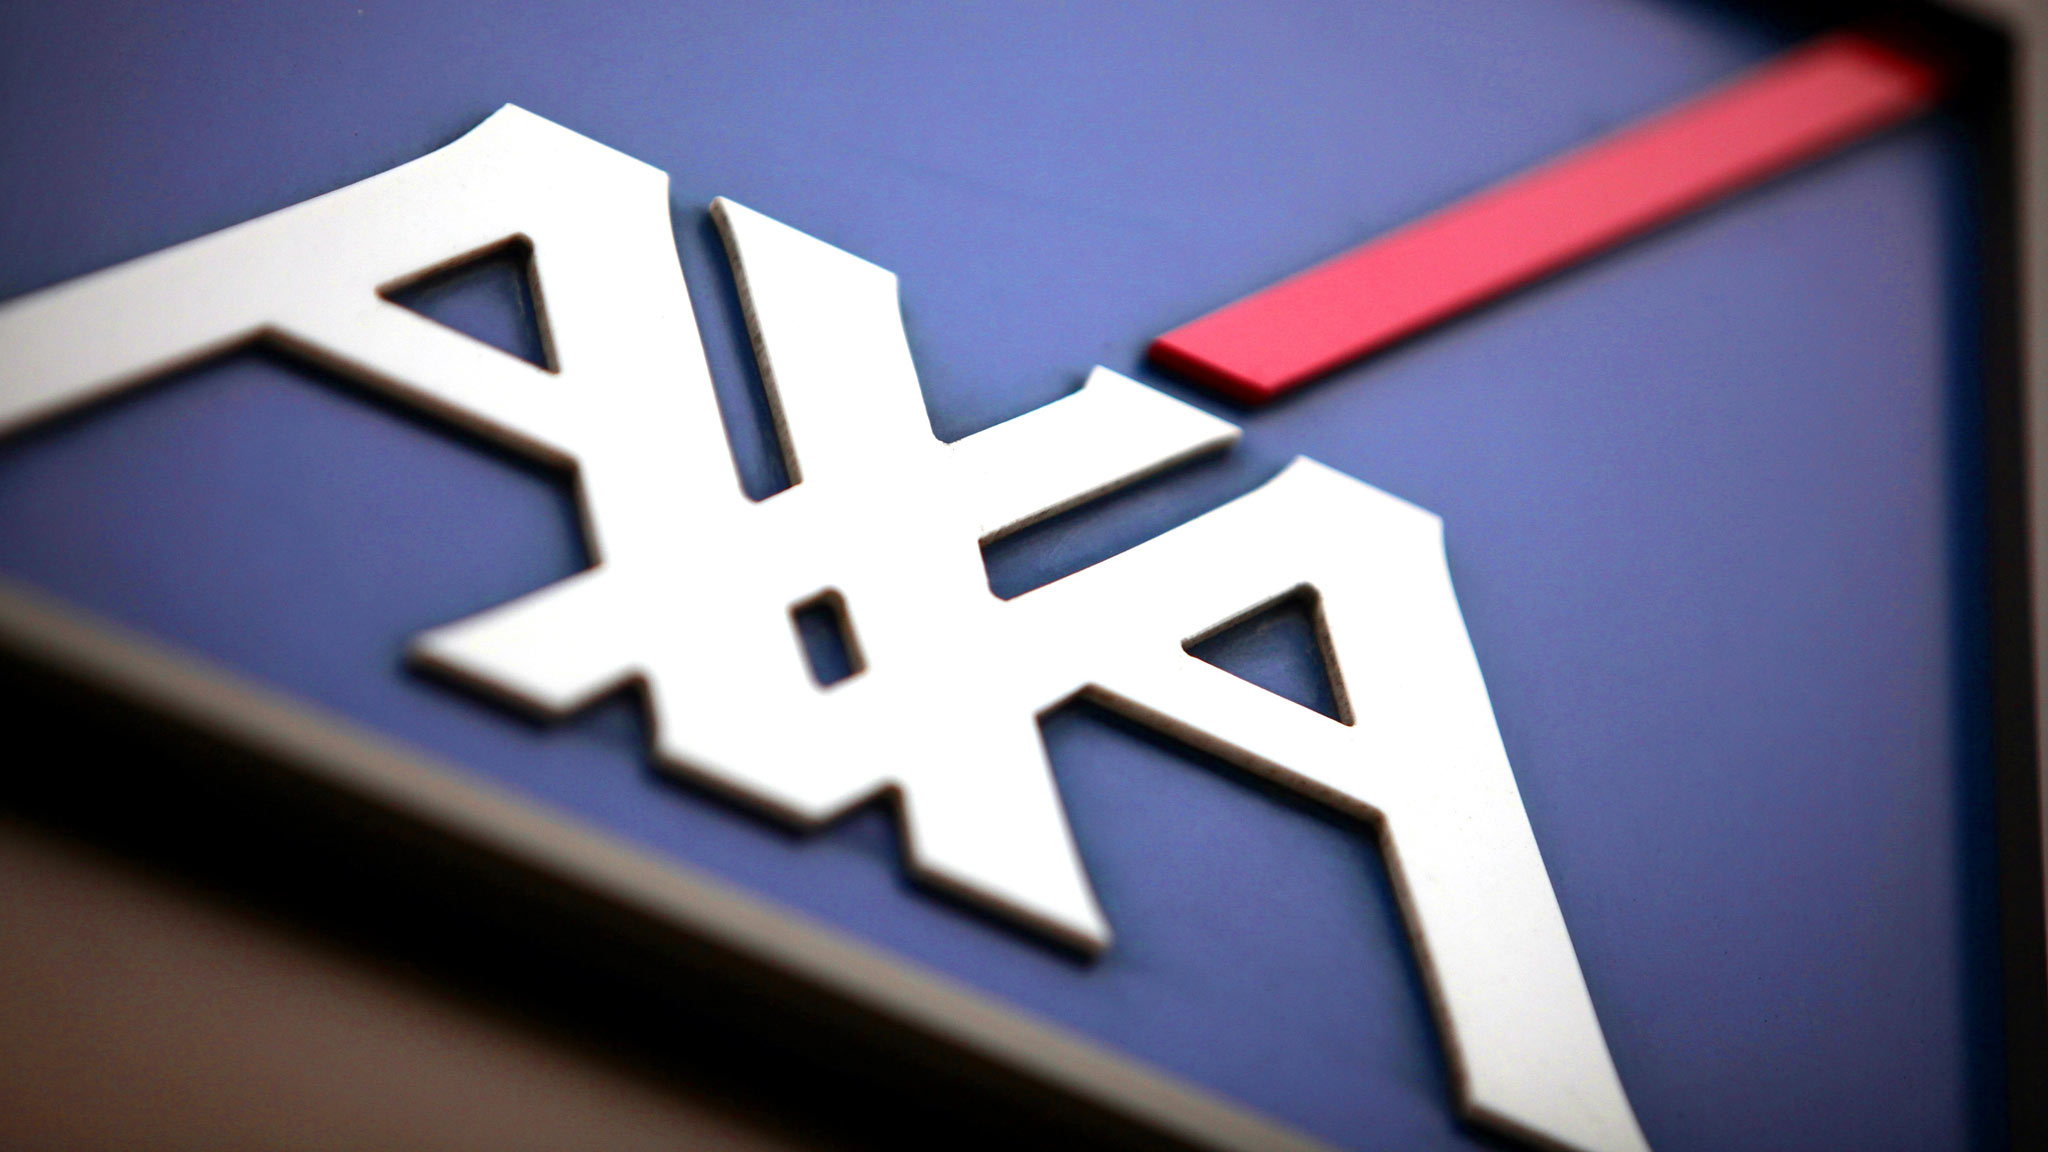 AXA RESOLUTION SALE...The Axa SA company logo sits outside the offices of Axa U.K., in London, U.K., on Monday, June 14, 2010. Axa SA, Europe's second-biggest insurer, said it's in talks to sell part of its U.K. life insurance unit to Clive Cowdery's Resolution Ltd. for 2.75 billion pounds ($4 billion). Photographer: Jason Alden/Bloomberg